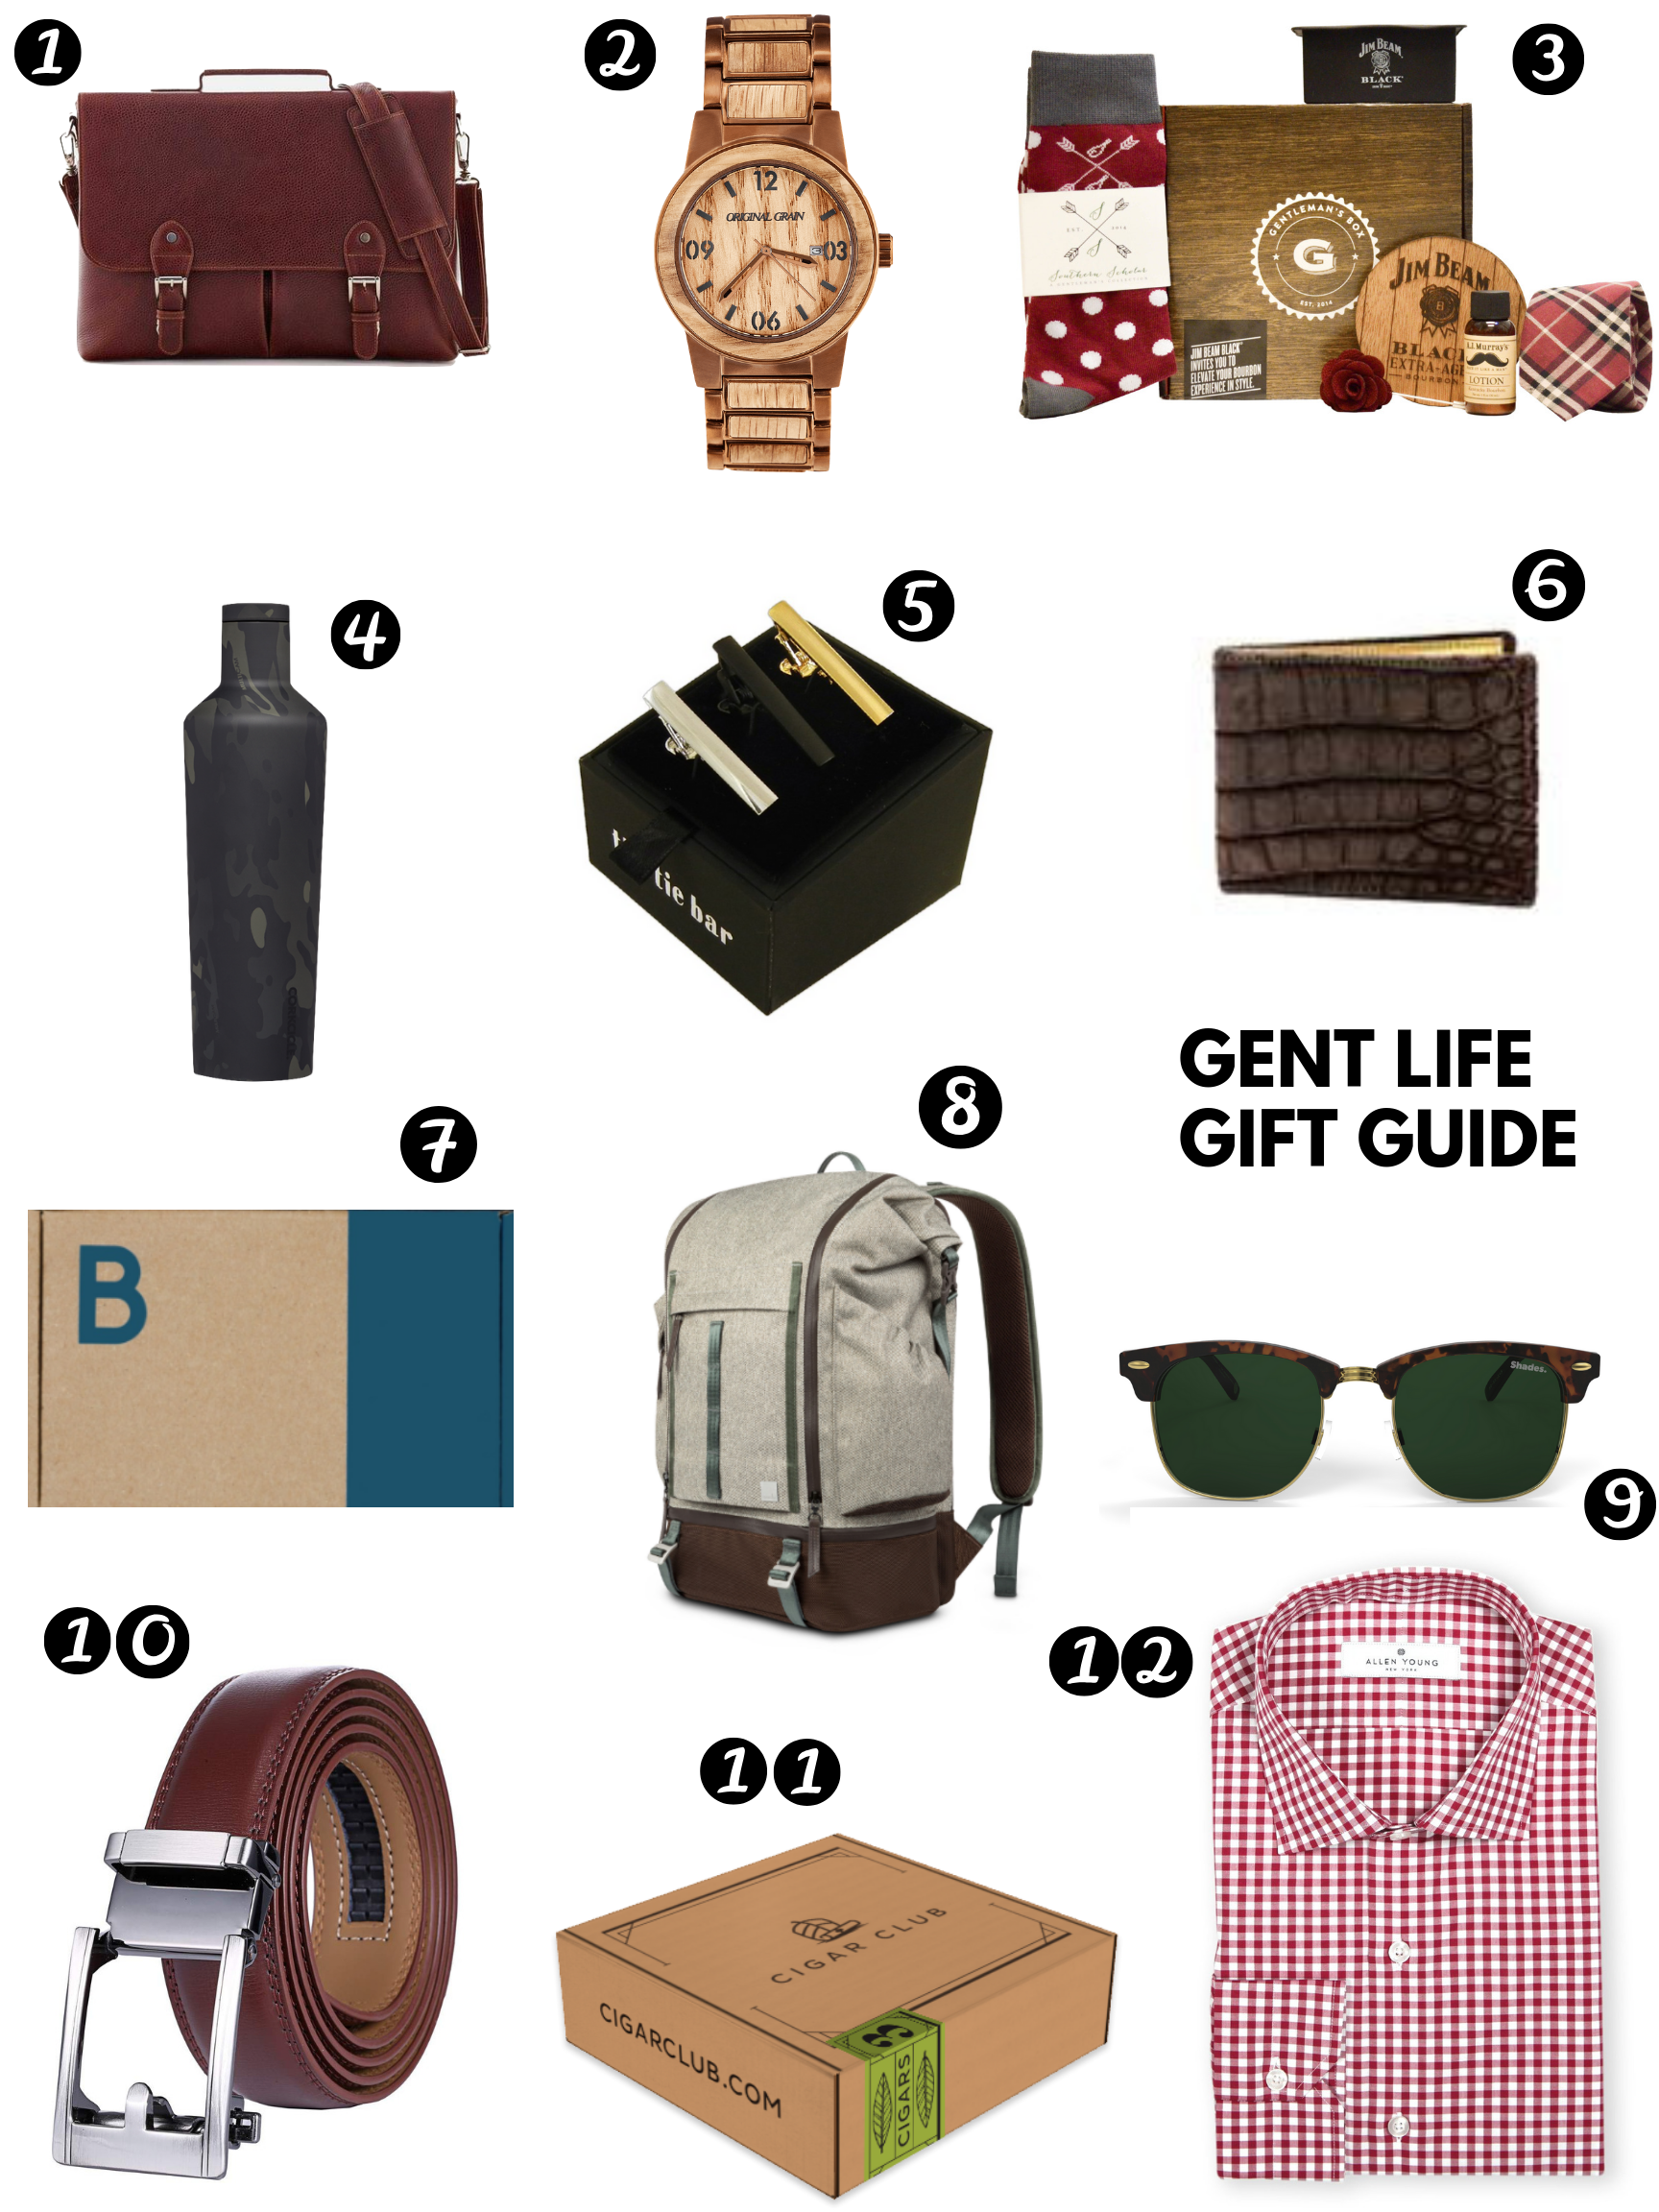 Gent Life Father's Day Gift Guide